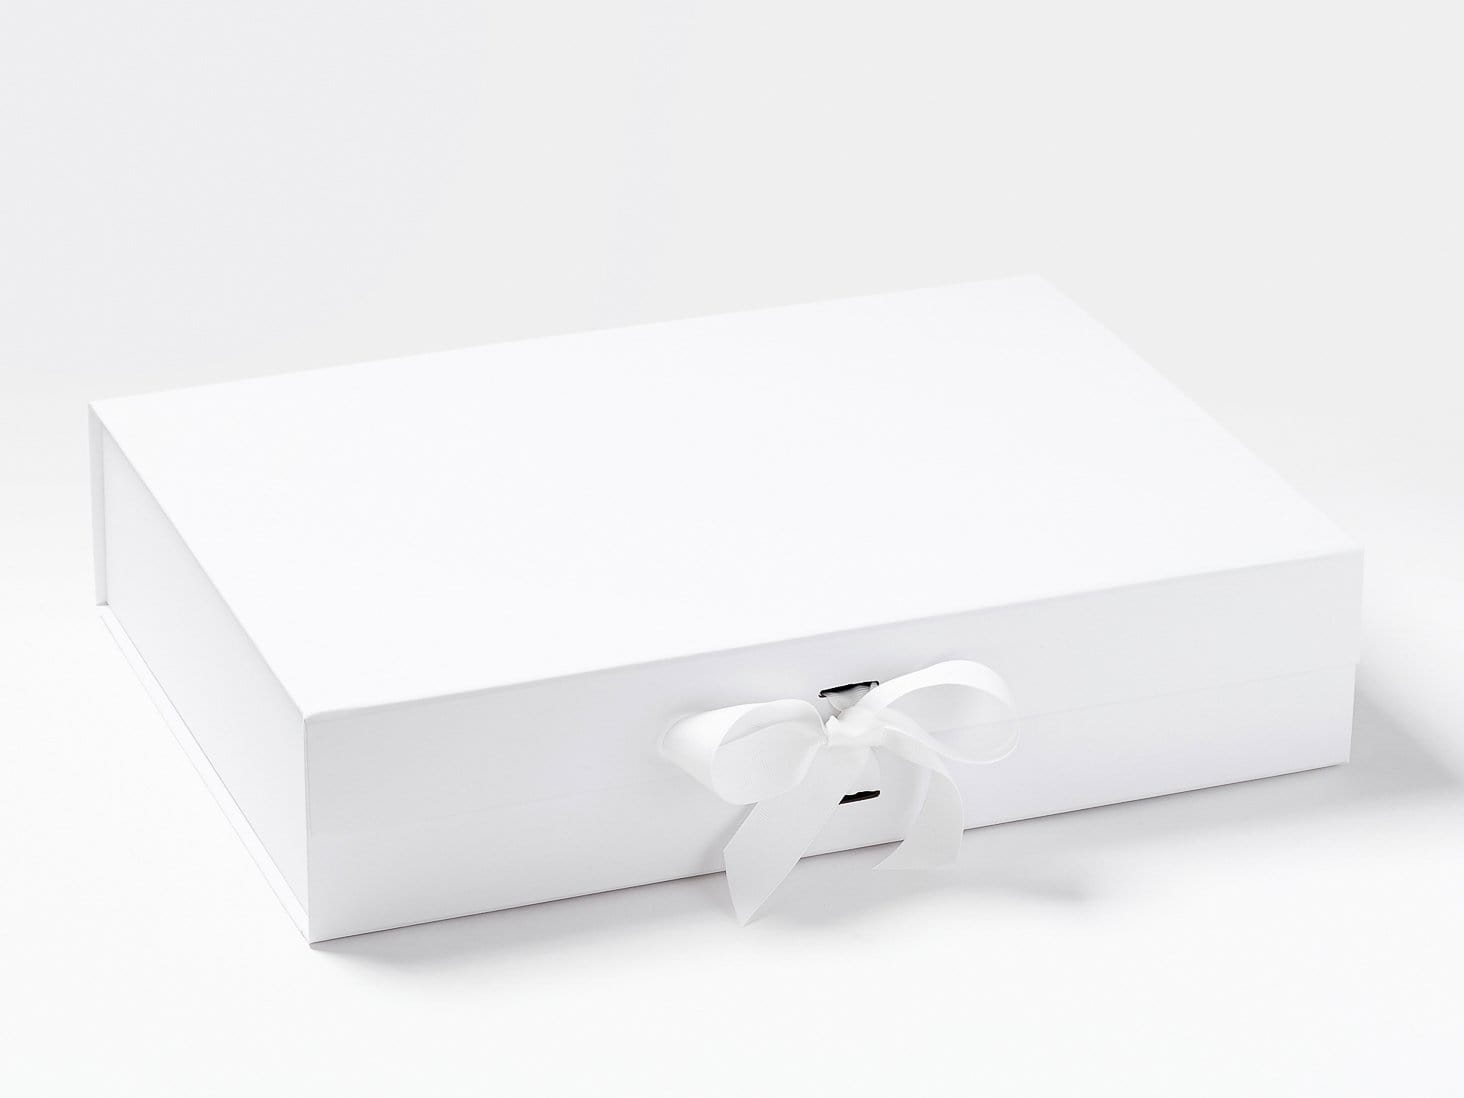 White A3 Shallow Gift Box with Changeable Ribbon